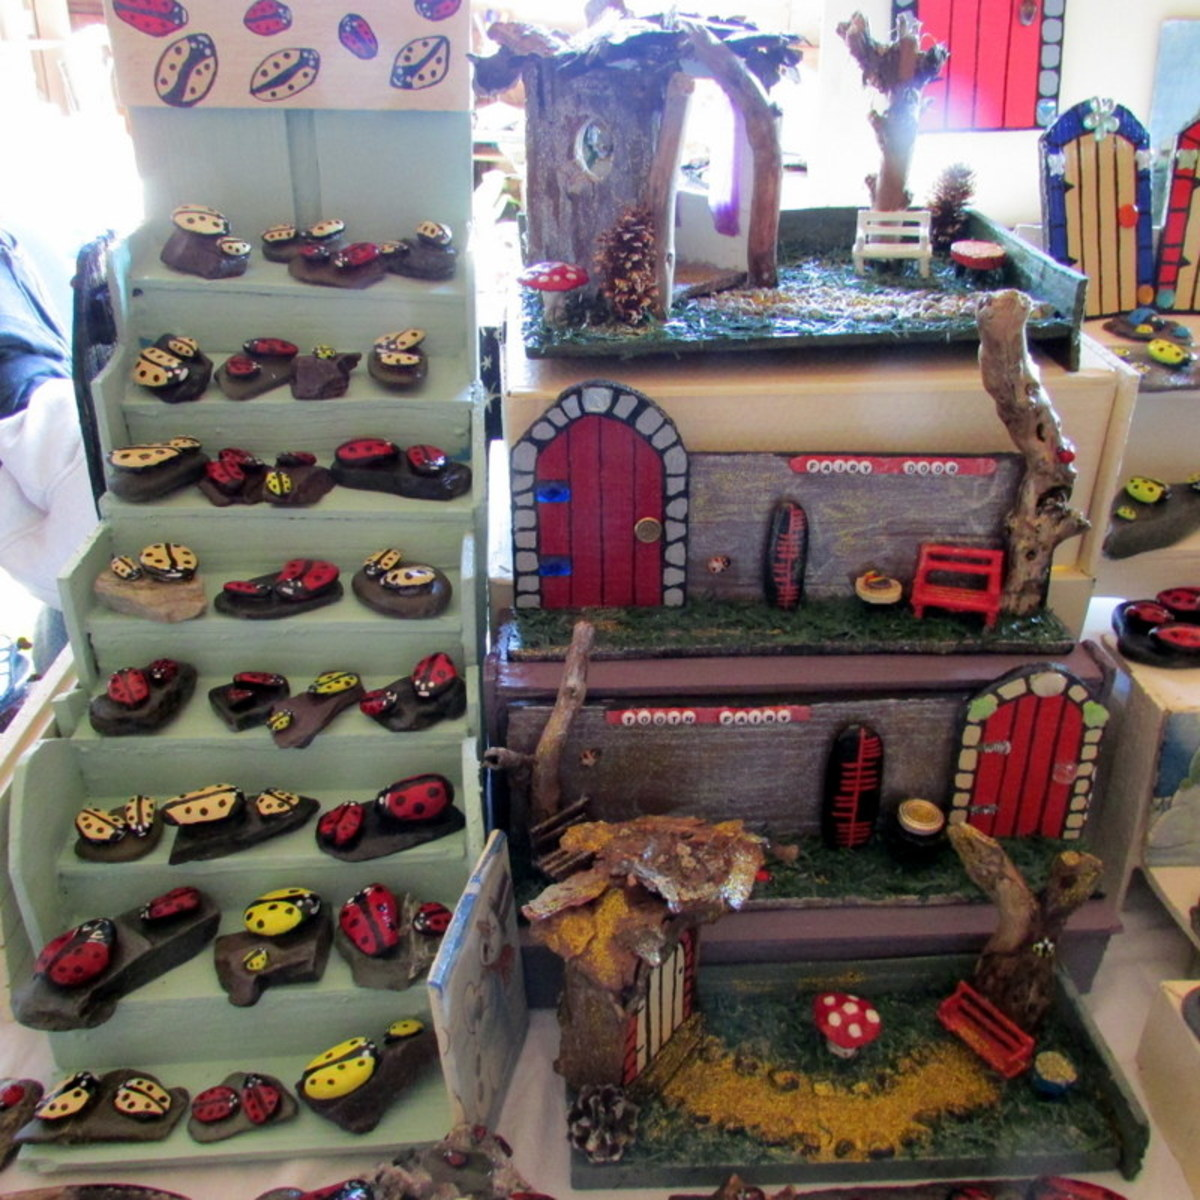 Best Display Ideas to Sell Your Crafts at Shows and Fairs